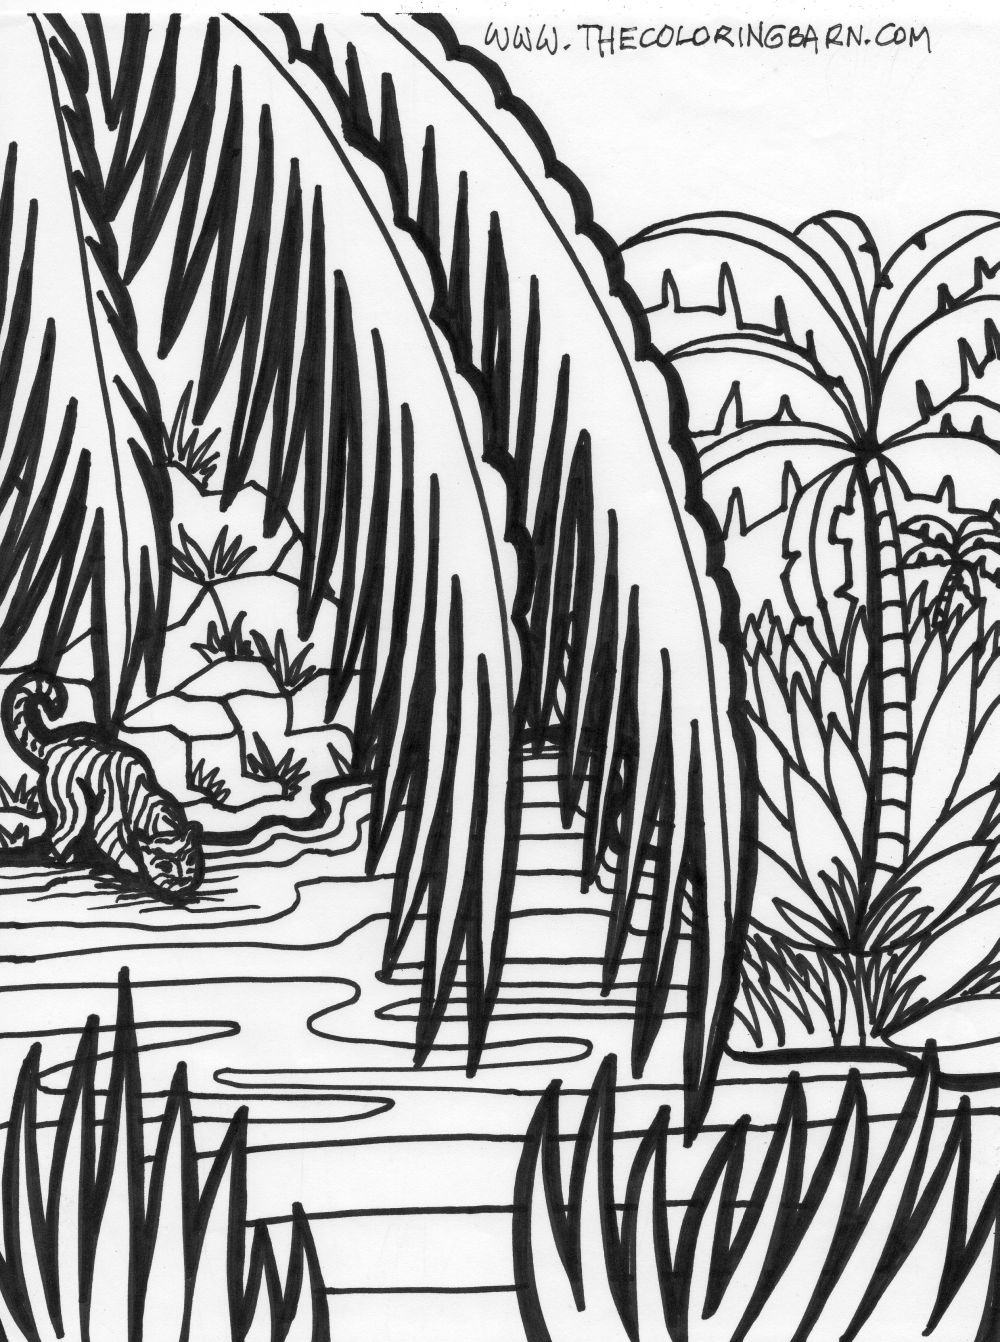 Jungle Scene Drawing at GetDrawings.com | Free for personal use ...